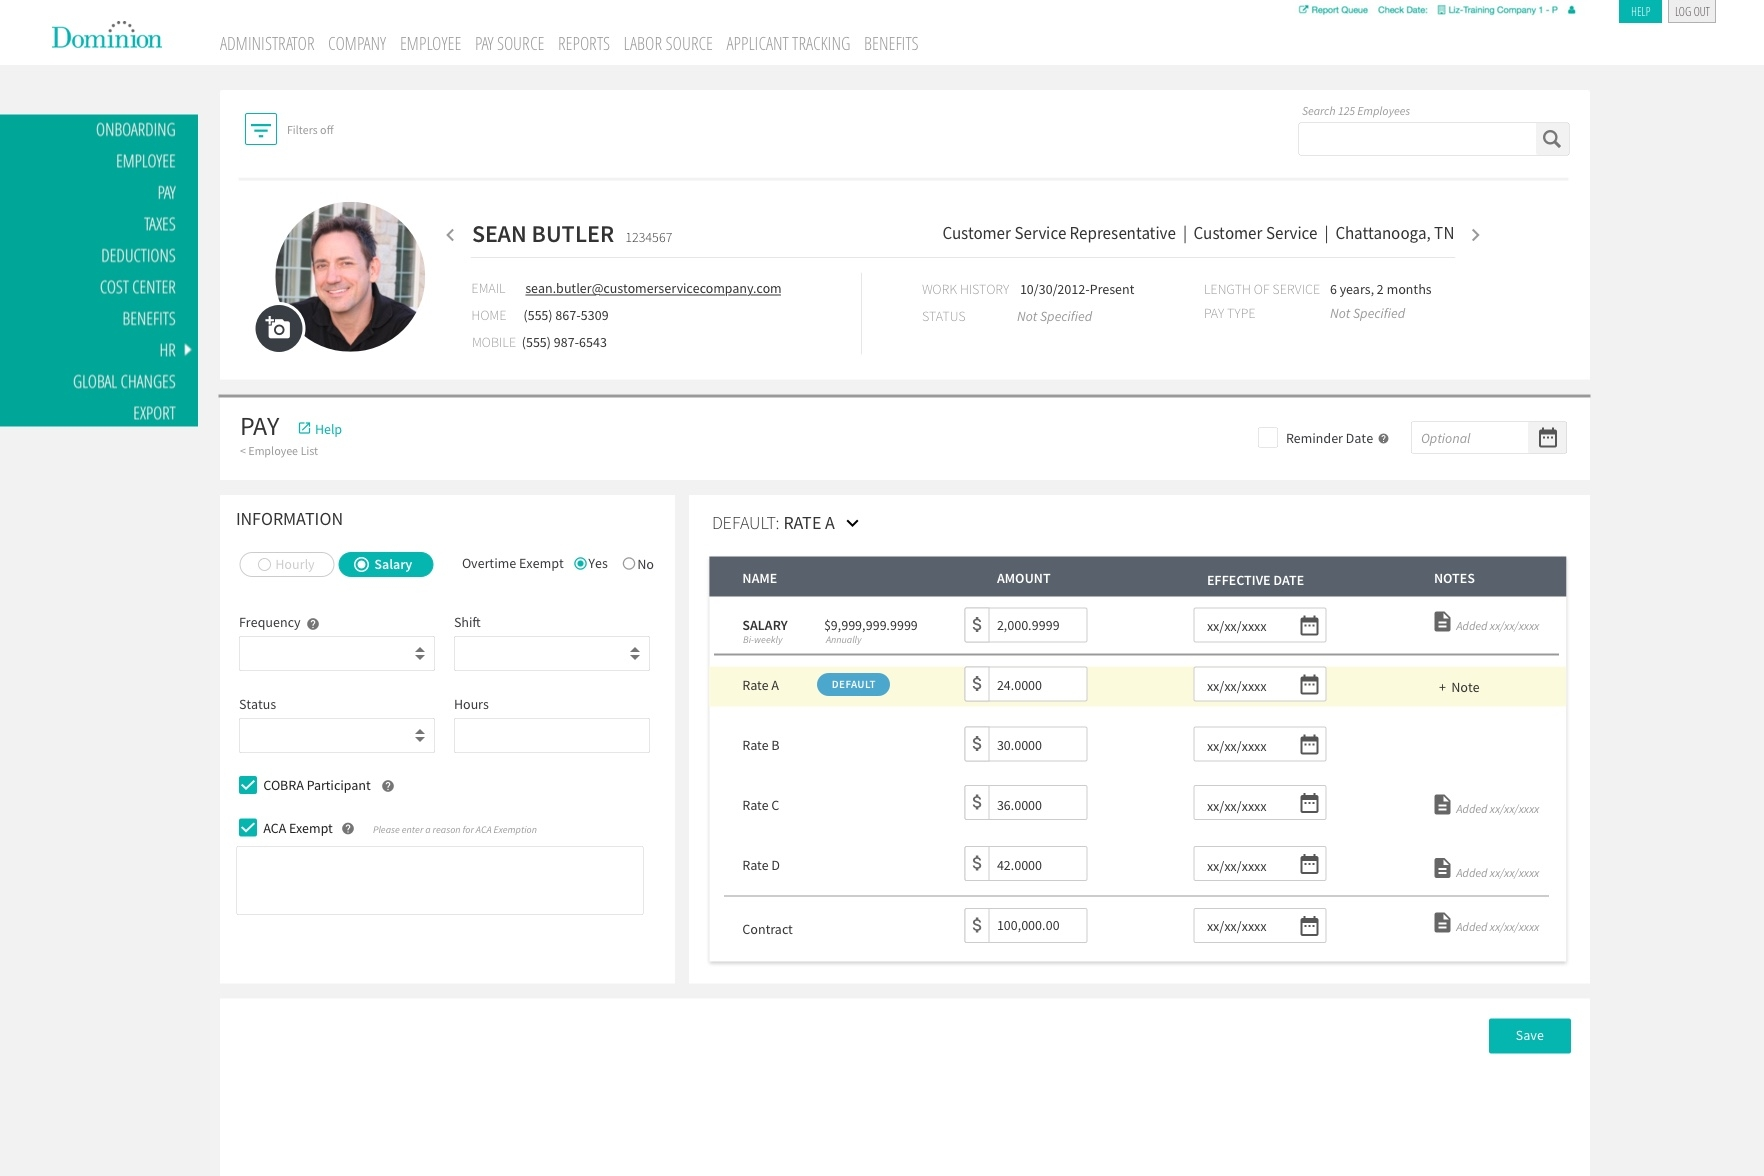 Here is the view of your Salary employee screen.